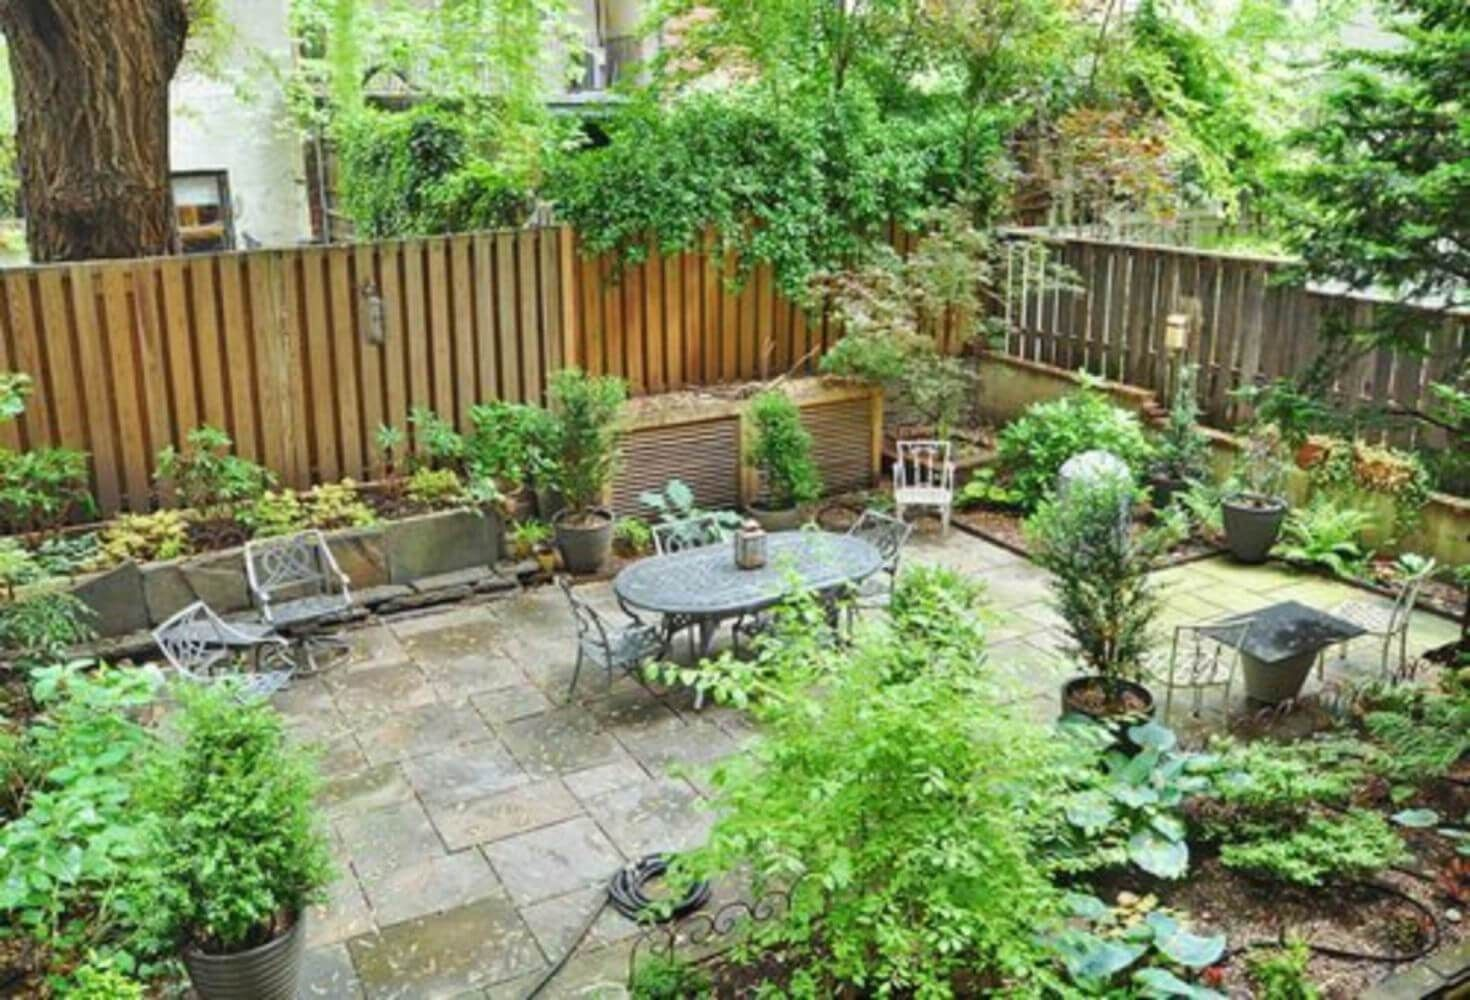 44+ Best Landscaping Design Ideas Without Grass 2020   No ... on Small Garden Ideas No Grass  id=78156